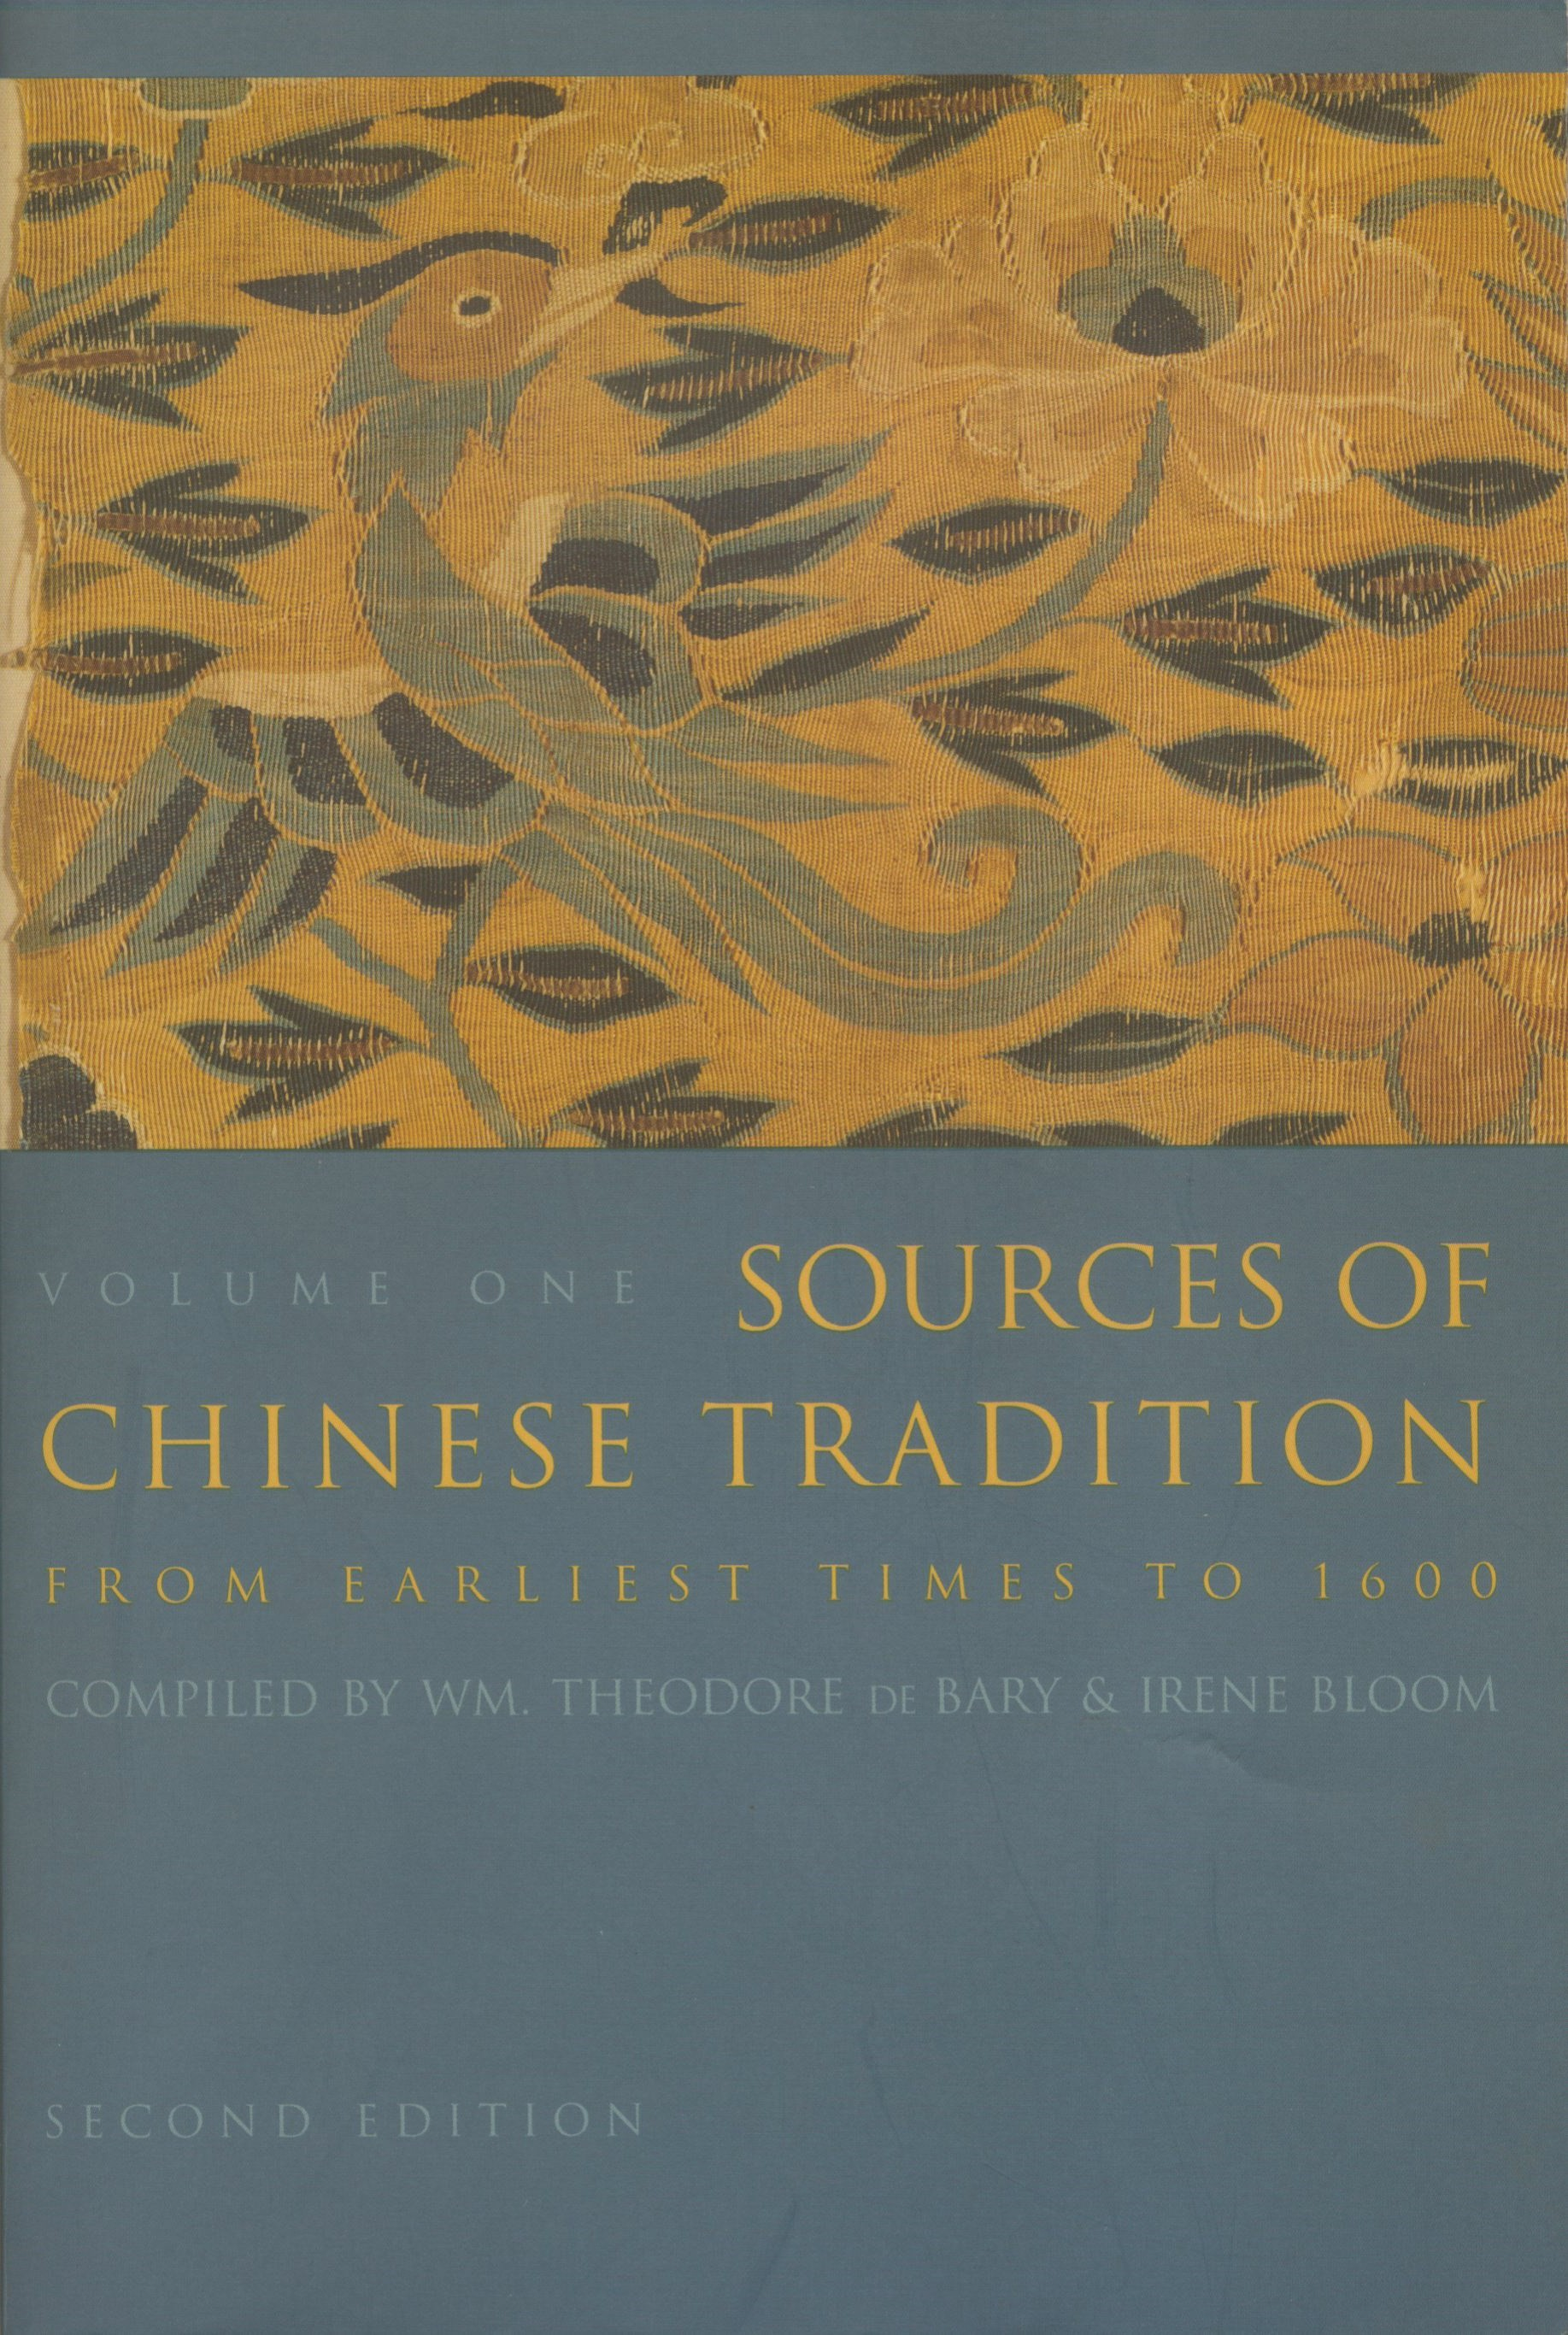 Abbildung von Bary / Bloom | Sources of Chinese Tradition | second edition | 1999